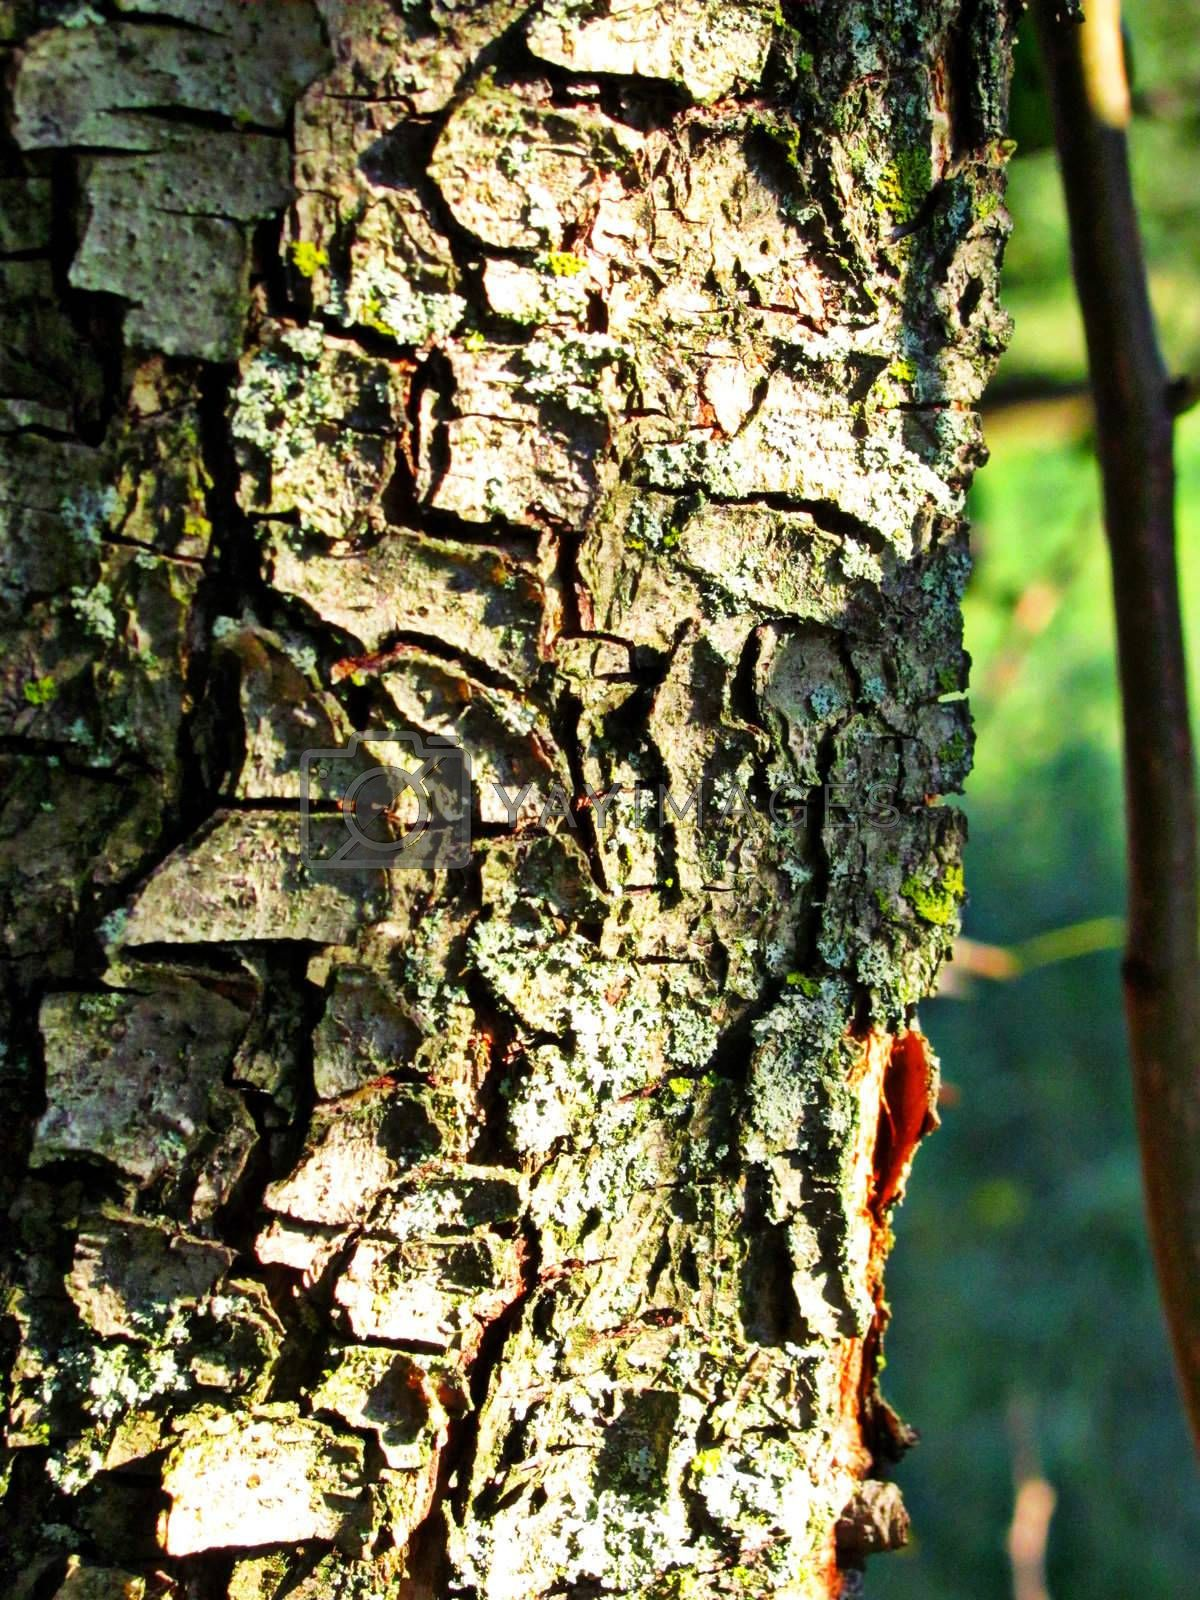 Royalty free image of Tree Bark by cccaity63